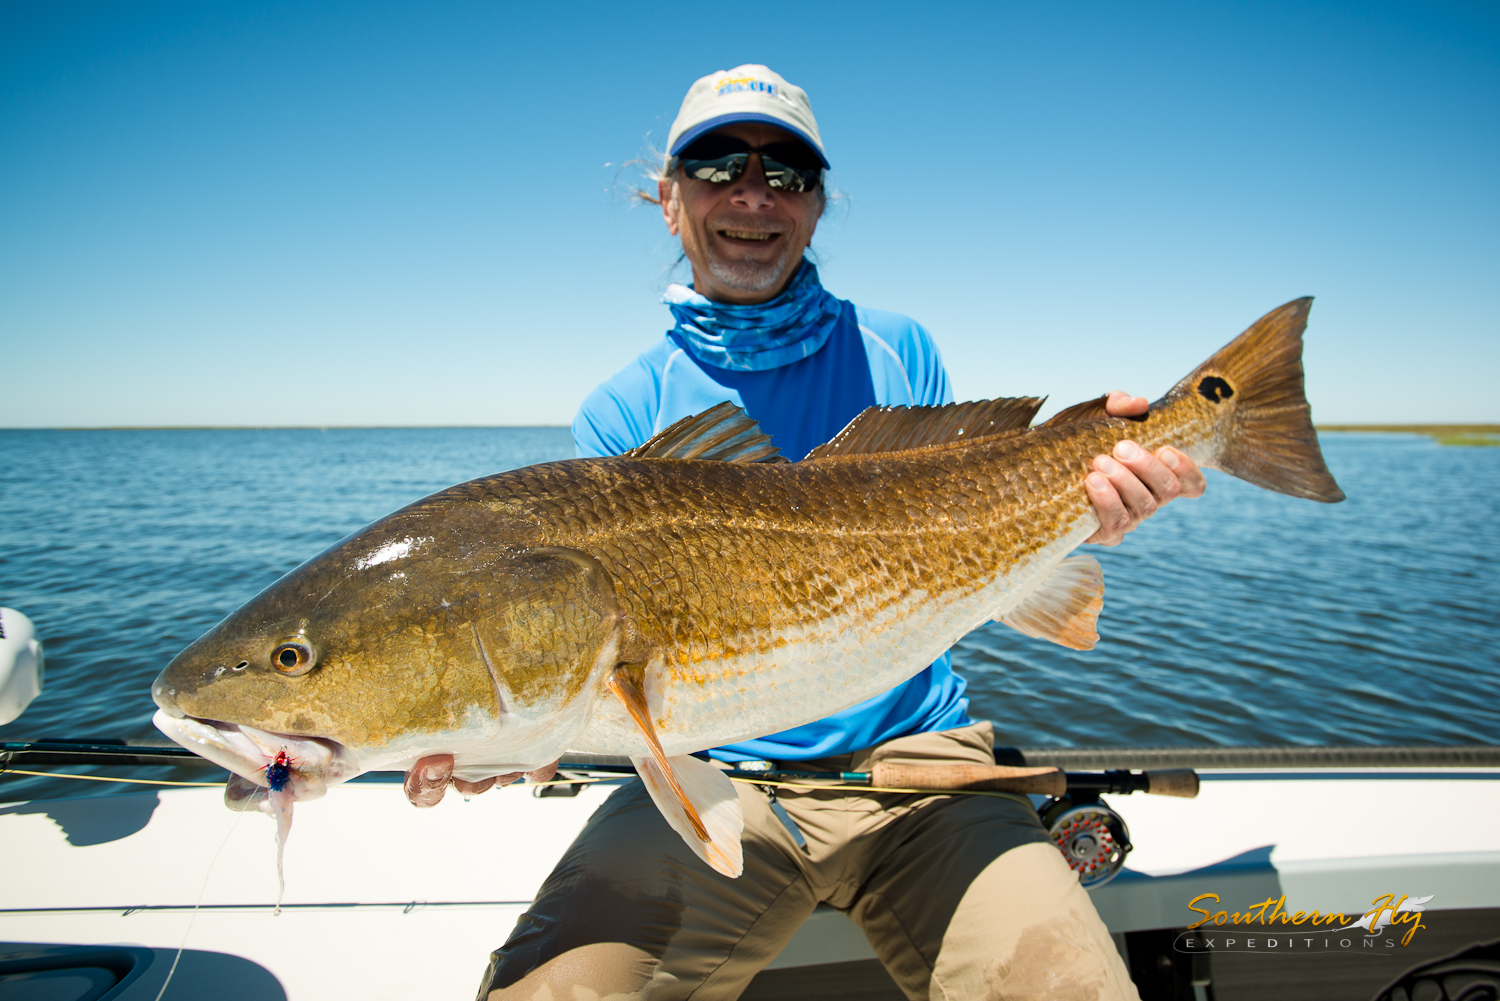 Minnesota Anglers Fly Fishing in New Orleans with Southern Fly Expeditions